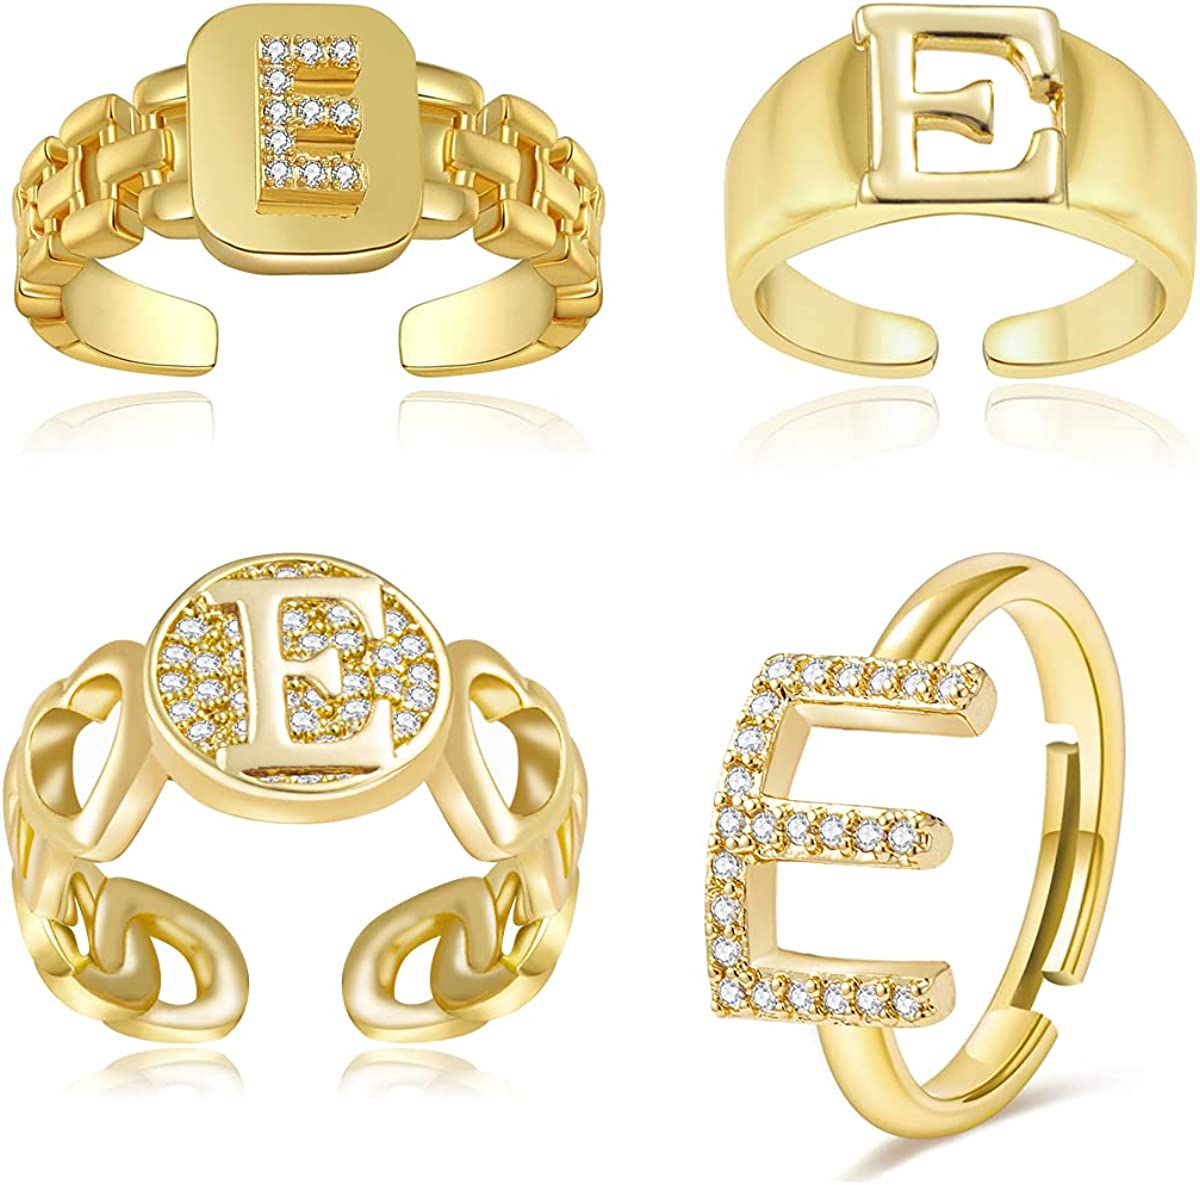 Wowsweet Initial Letter Open Ring Adjustable Statement Rings 14K Gold Plated Alphabet Rings Letter A to Z